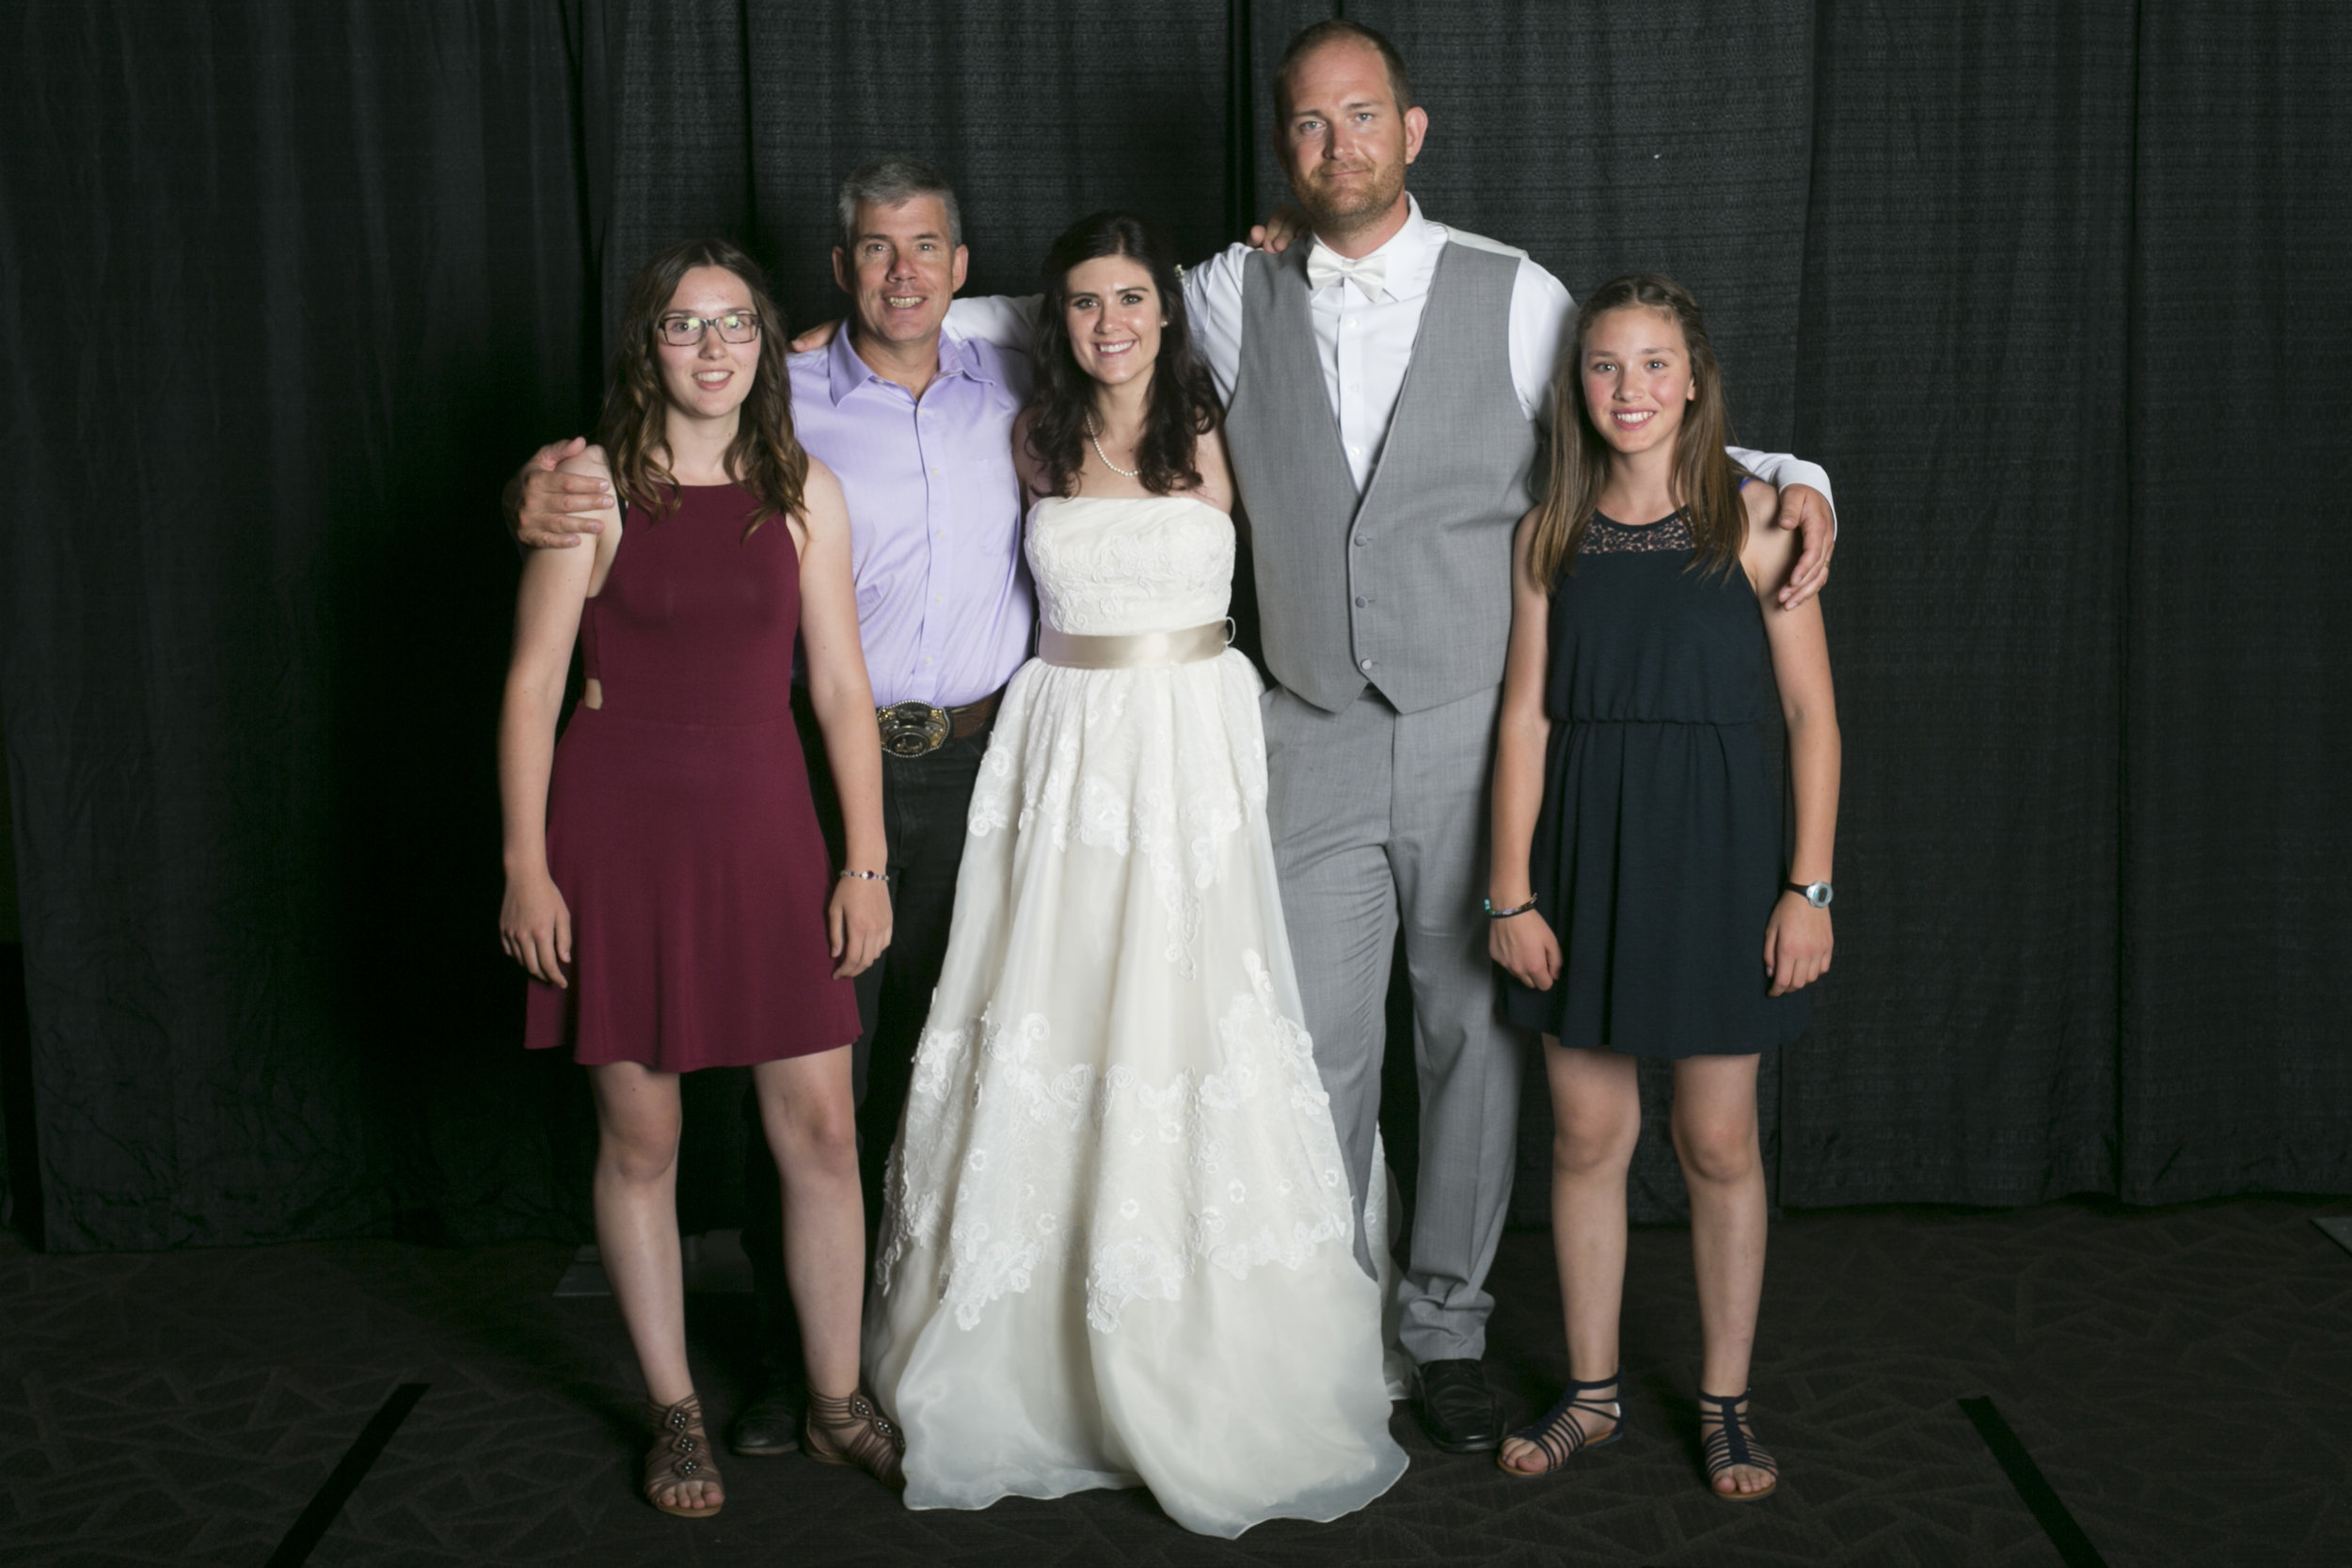 wedding photo booth-104.jpg